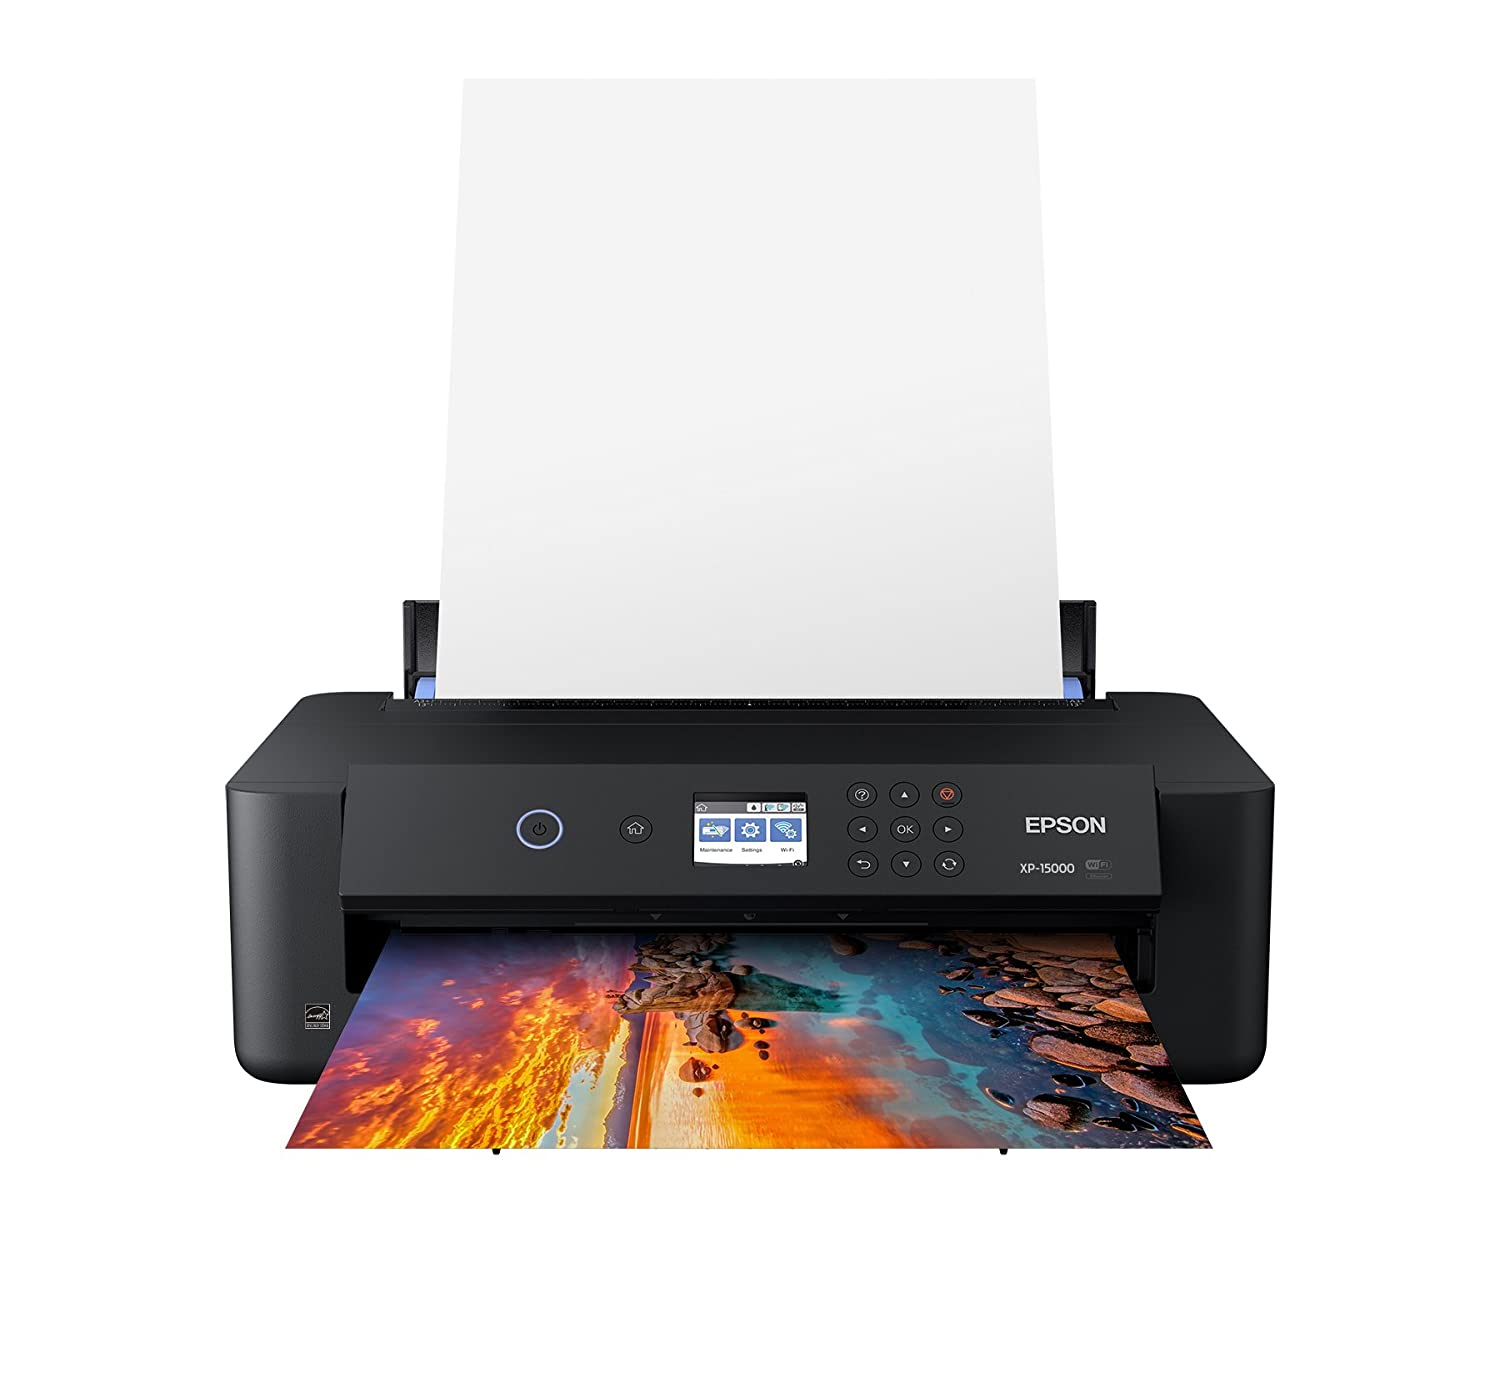 Epson Expression XP-15000 Wireless Printer Black Friday Deal 2020